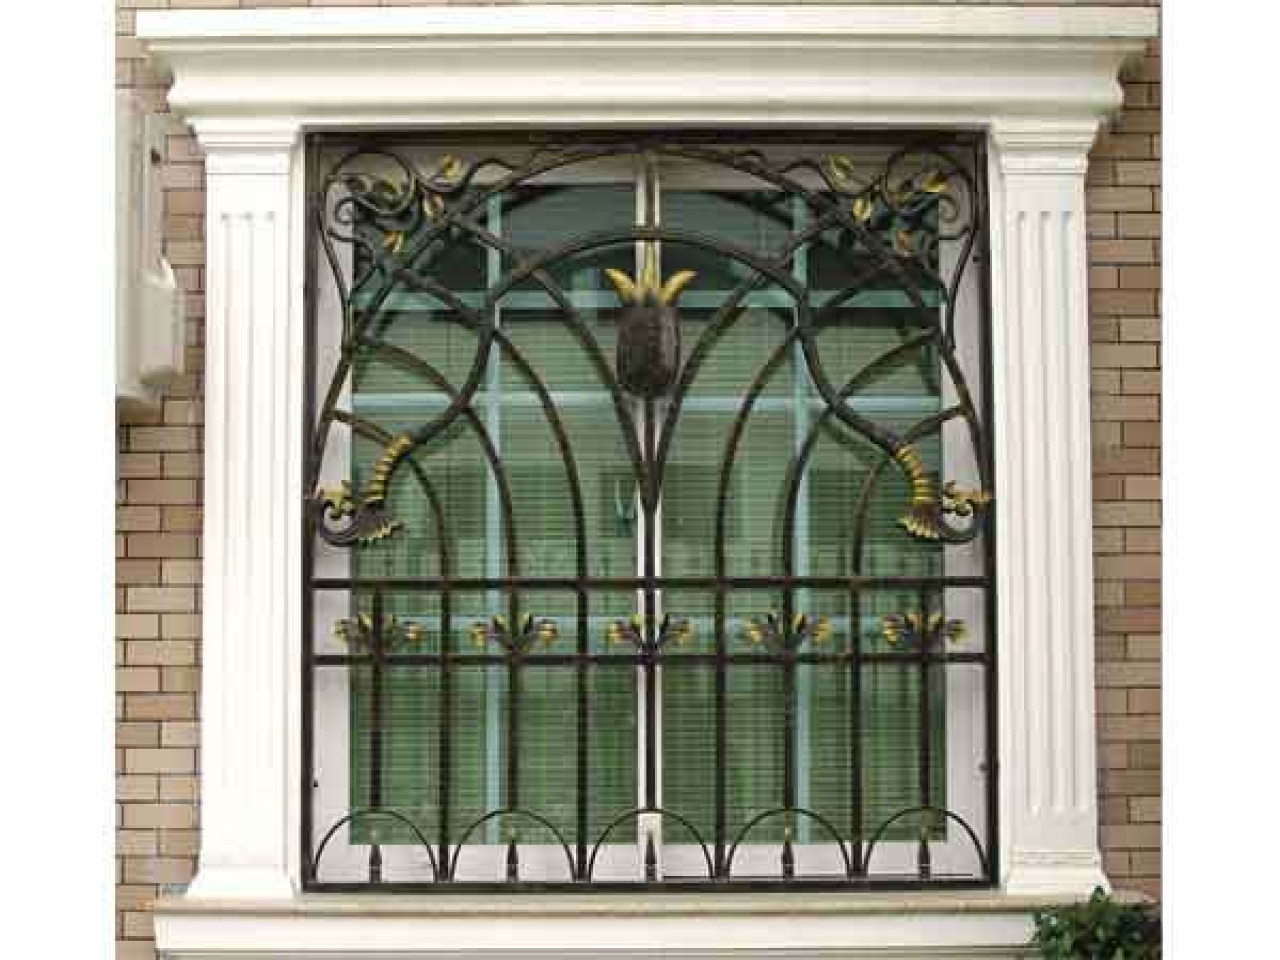 Www images of steel window modern steel window grills for Window grill design catalogue 2016